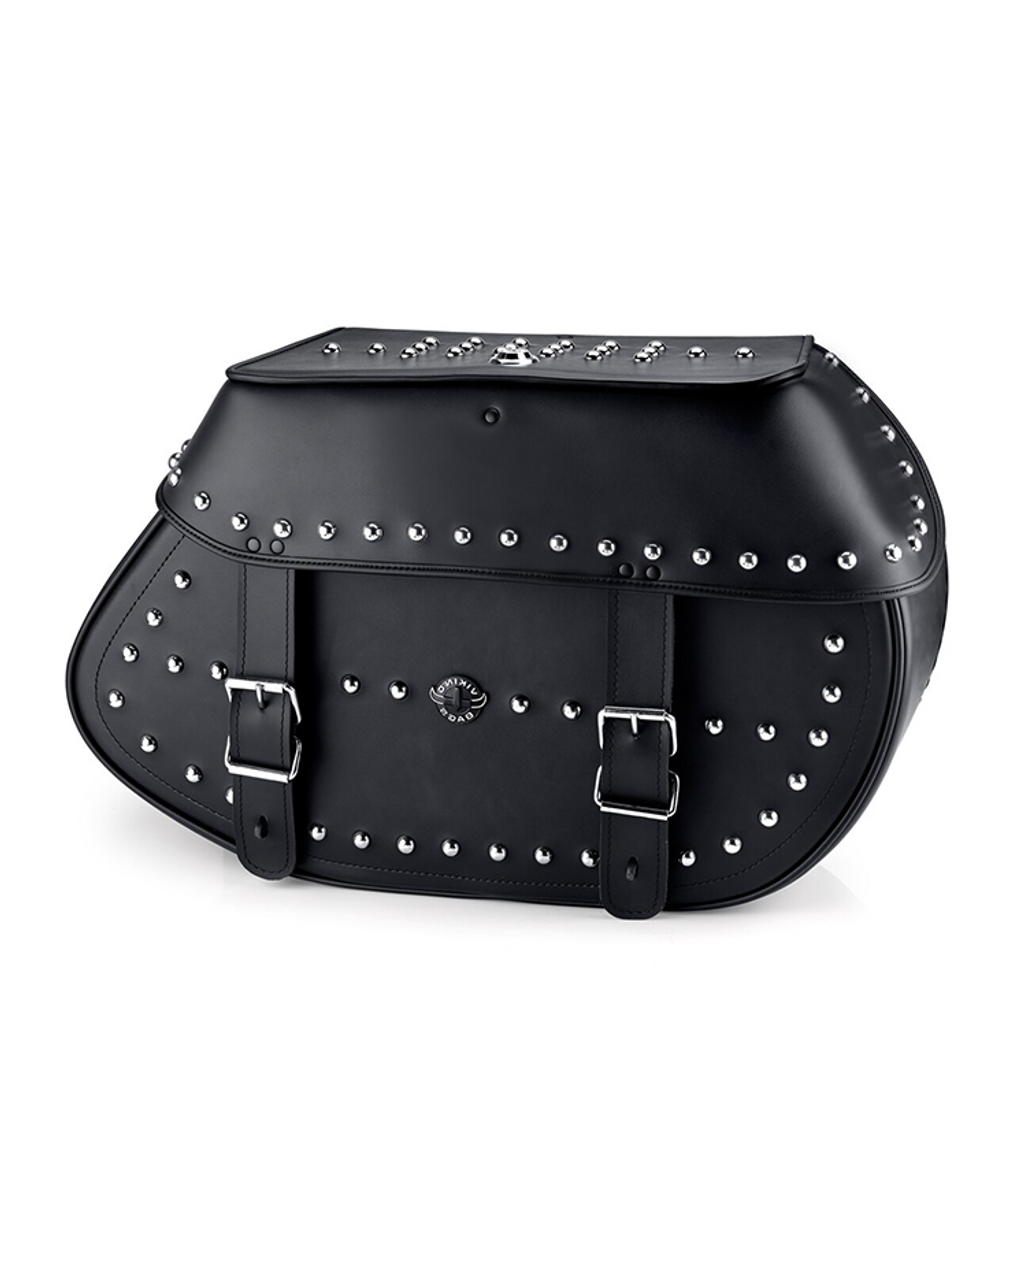 Viking Specific Studded Saddlebags For Harley Softail Night Train FXSTB Main View